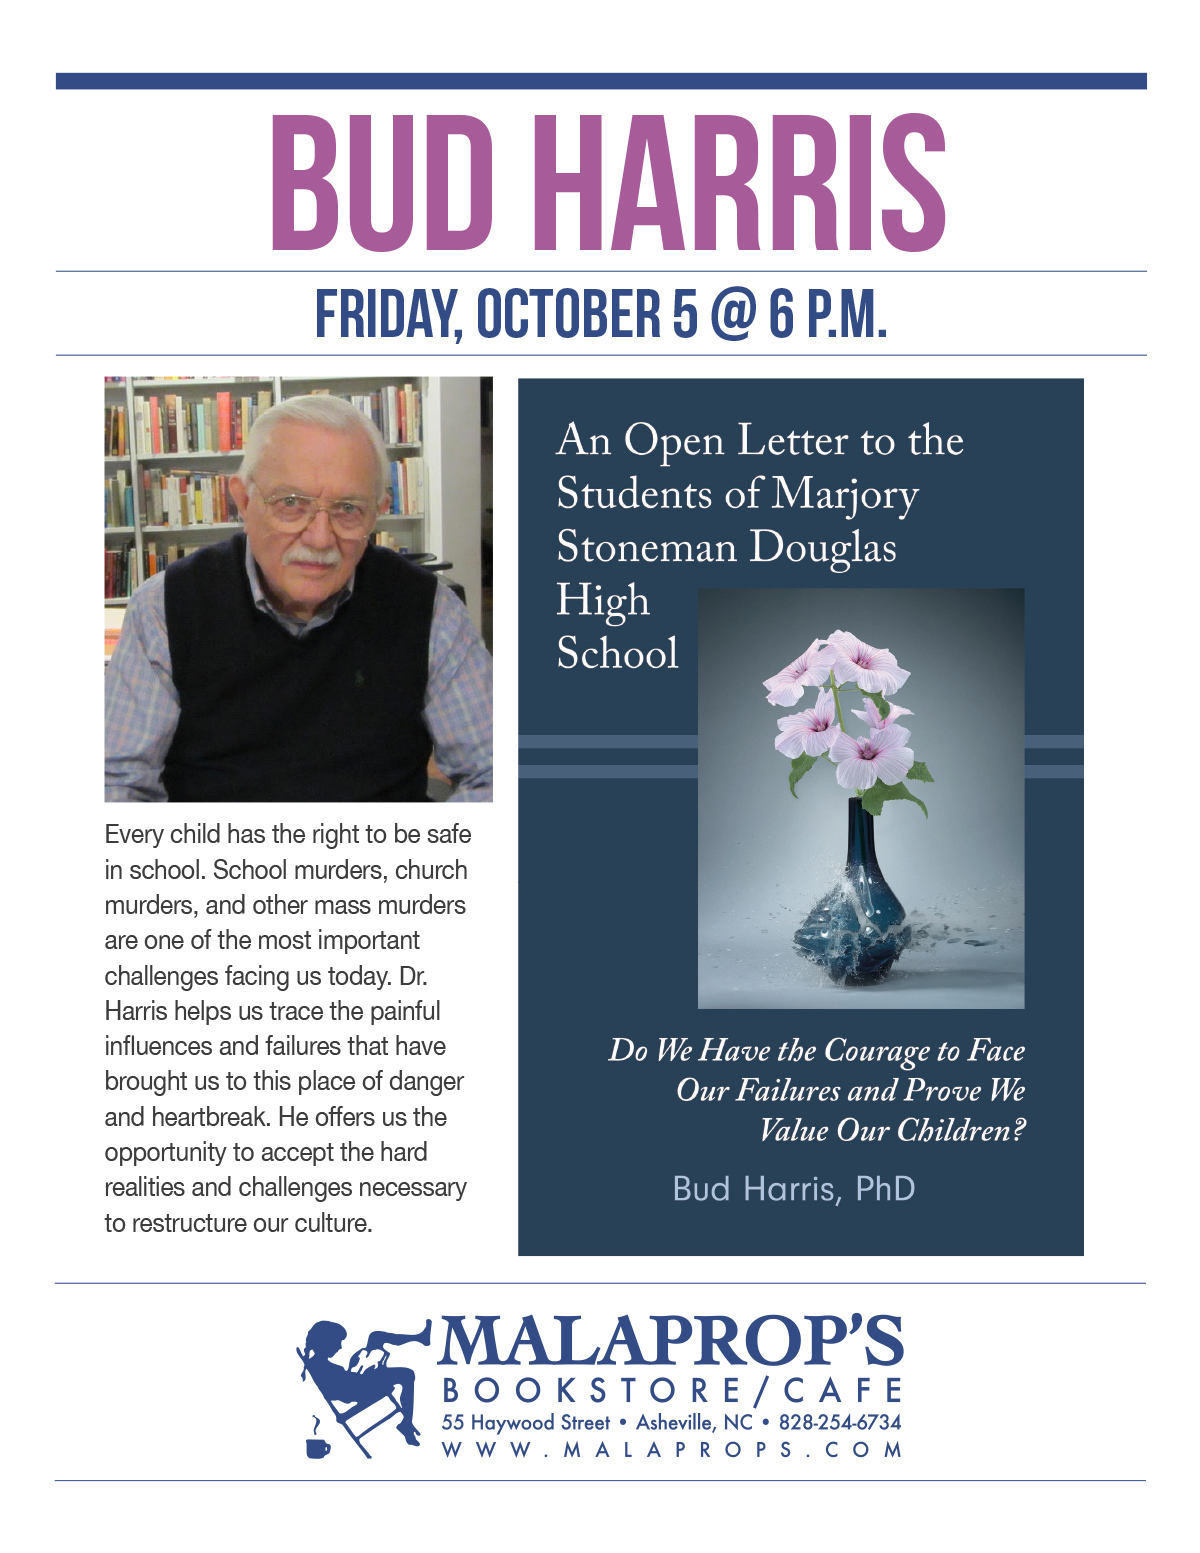 Bud Harris PhD presents his new book at Malaprop's Bookstore in Asheville